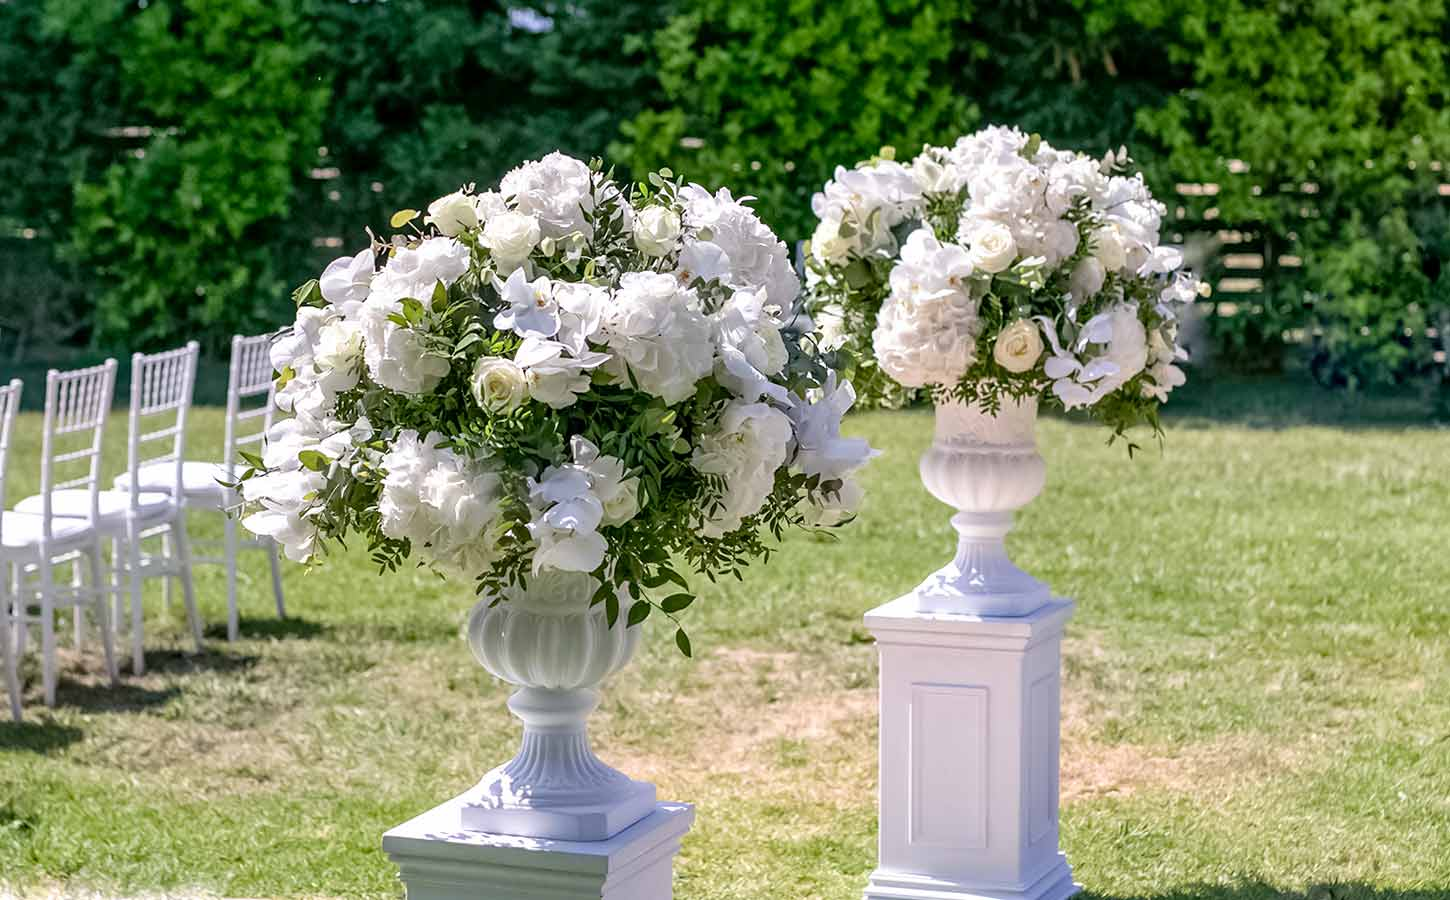 cermony-flower-compositions-orchids-hydrangeas-diamond-events-destination-wedding-planner